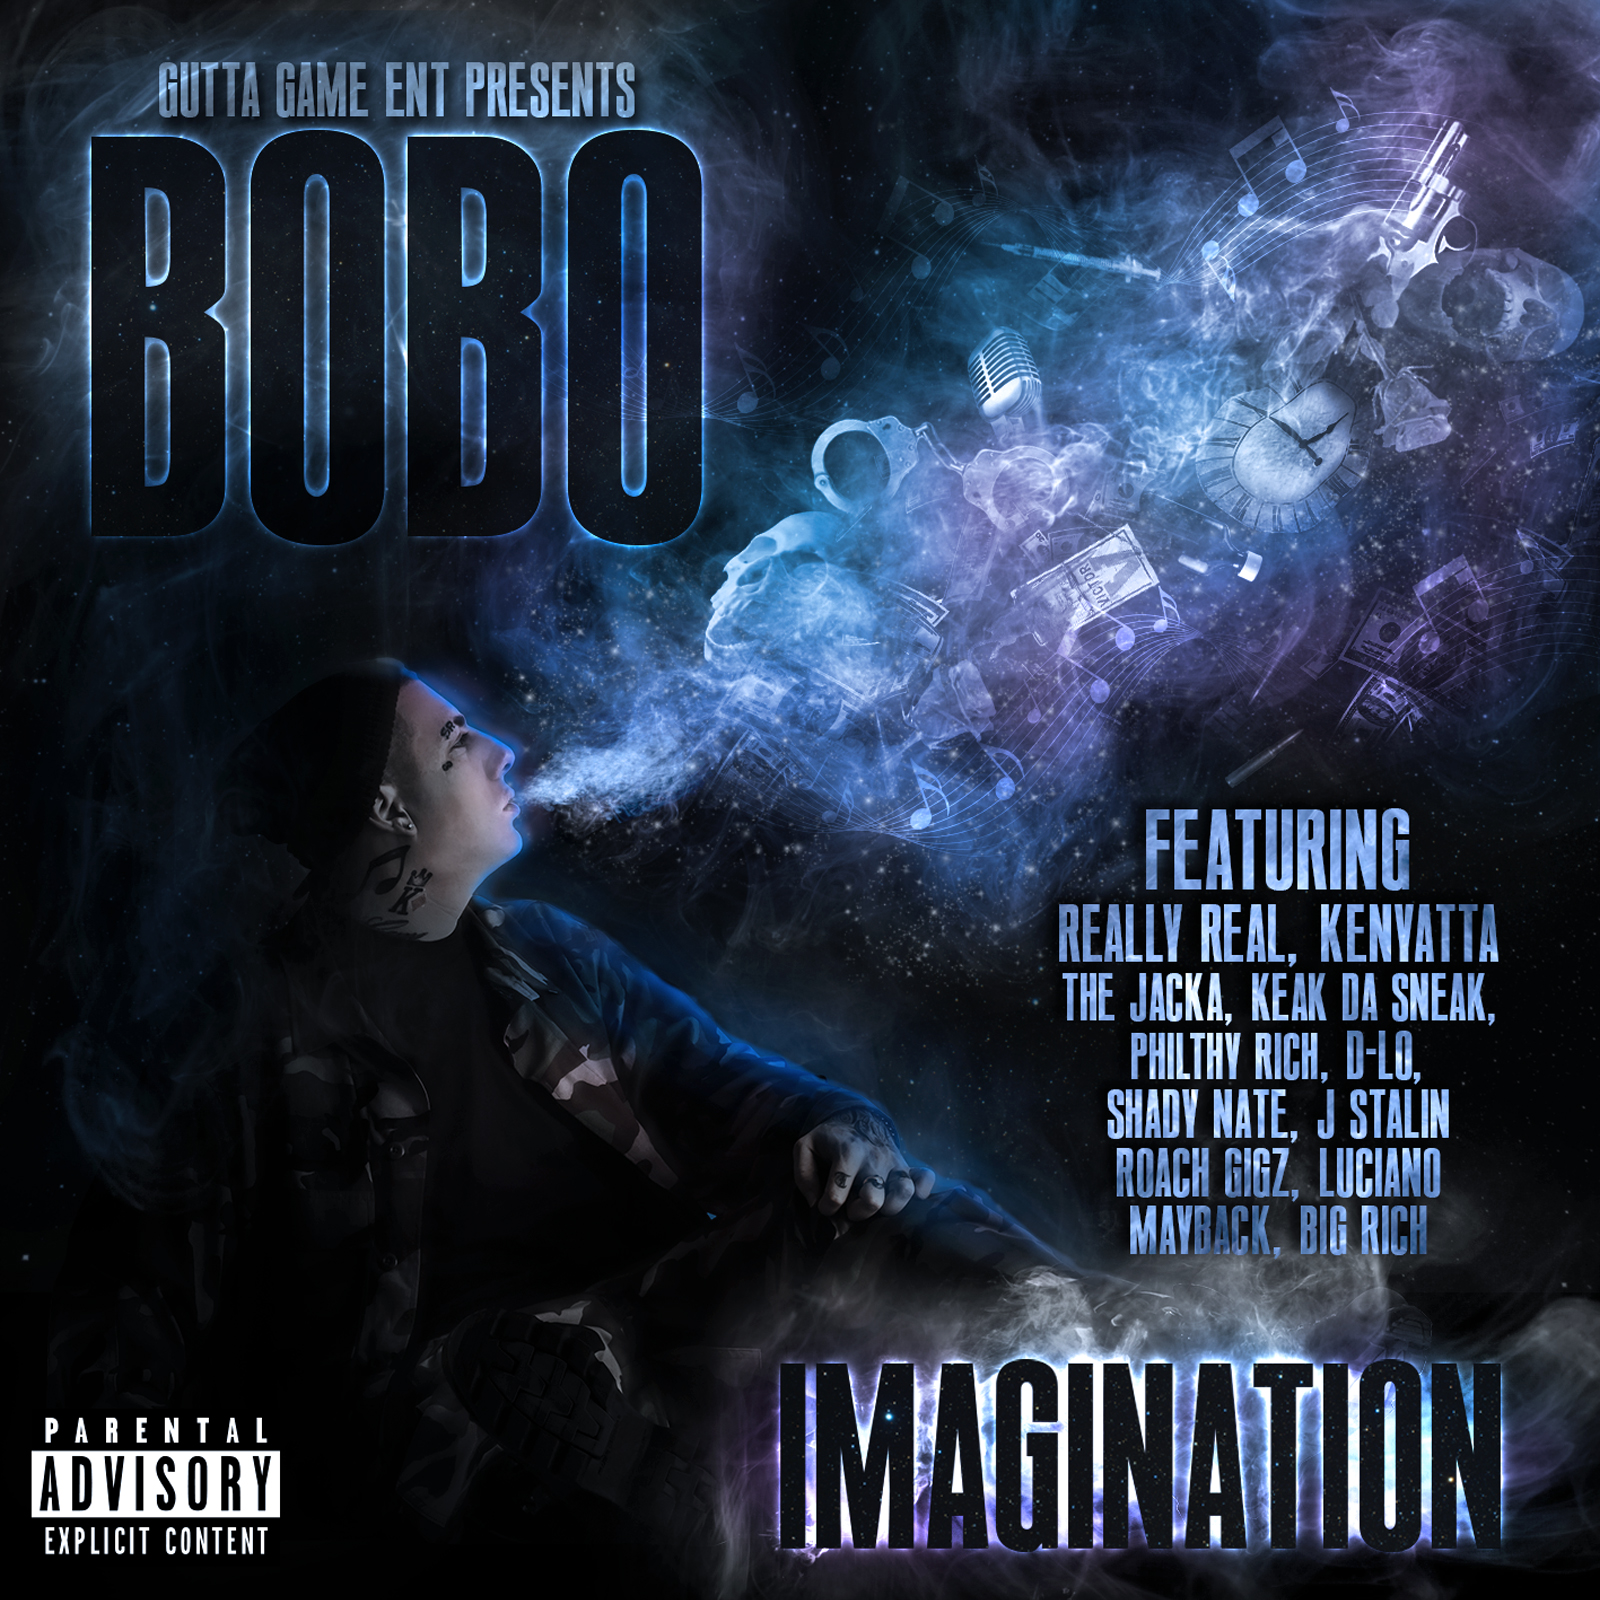 bobo_imagination_cover.jpg